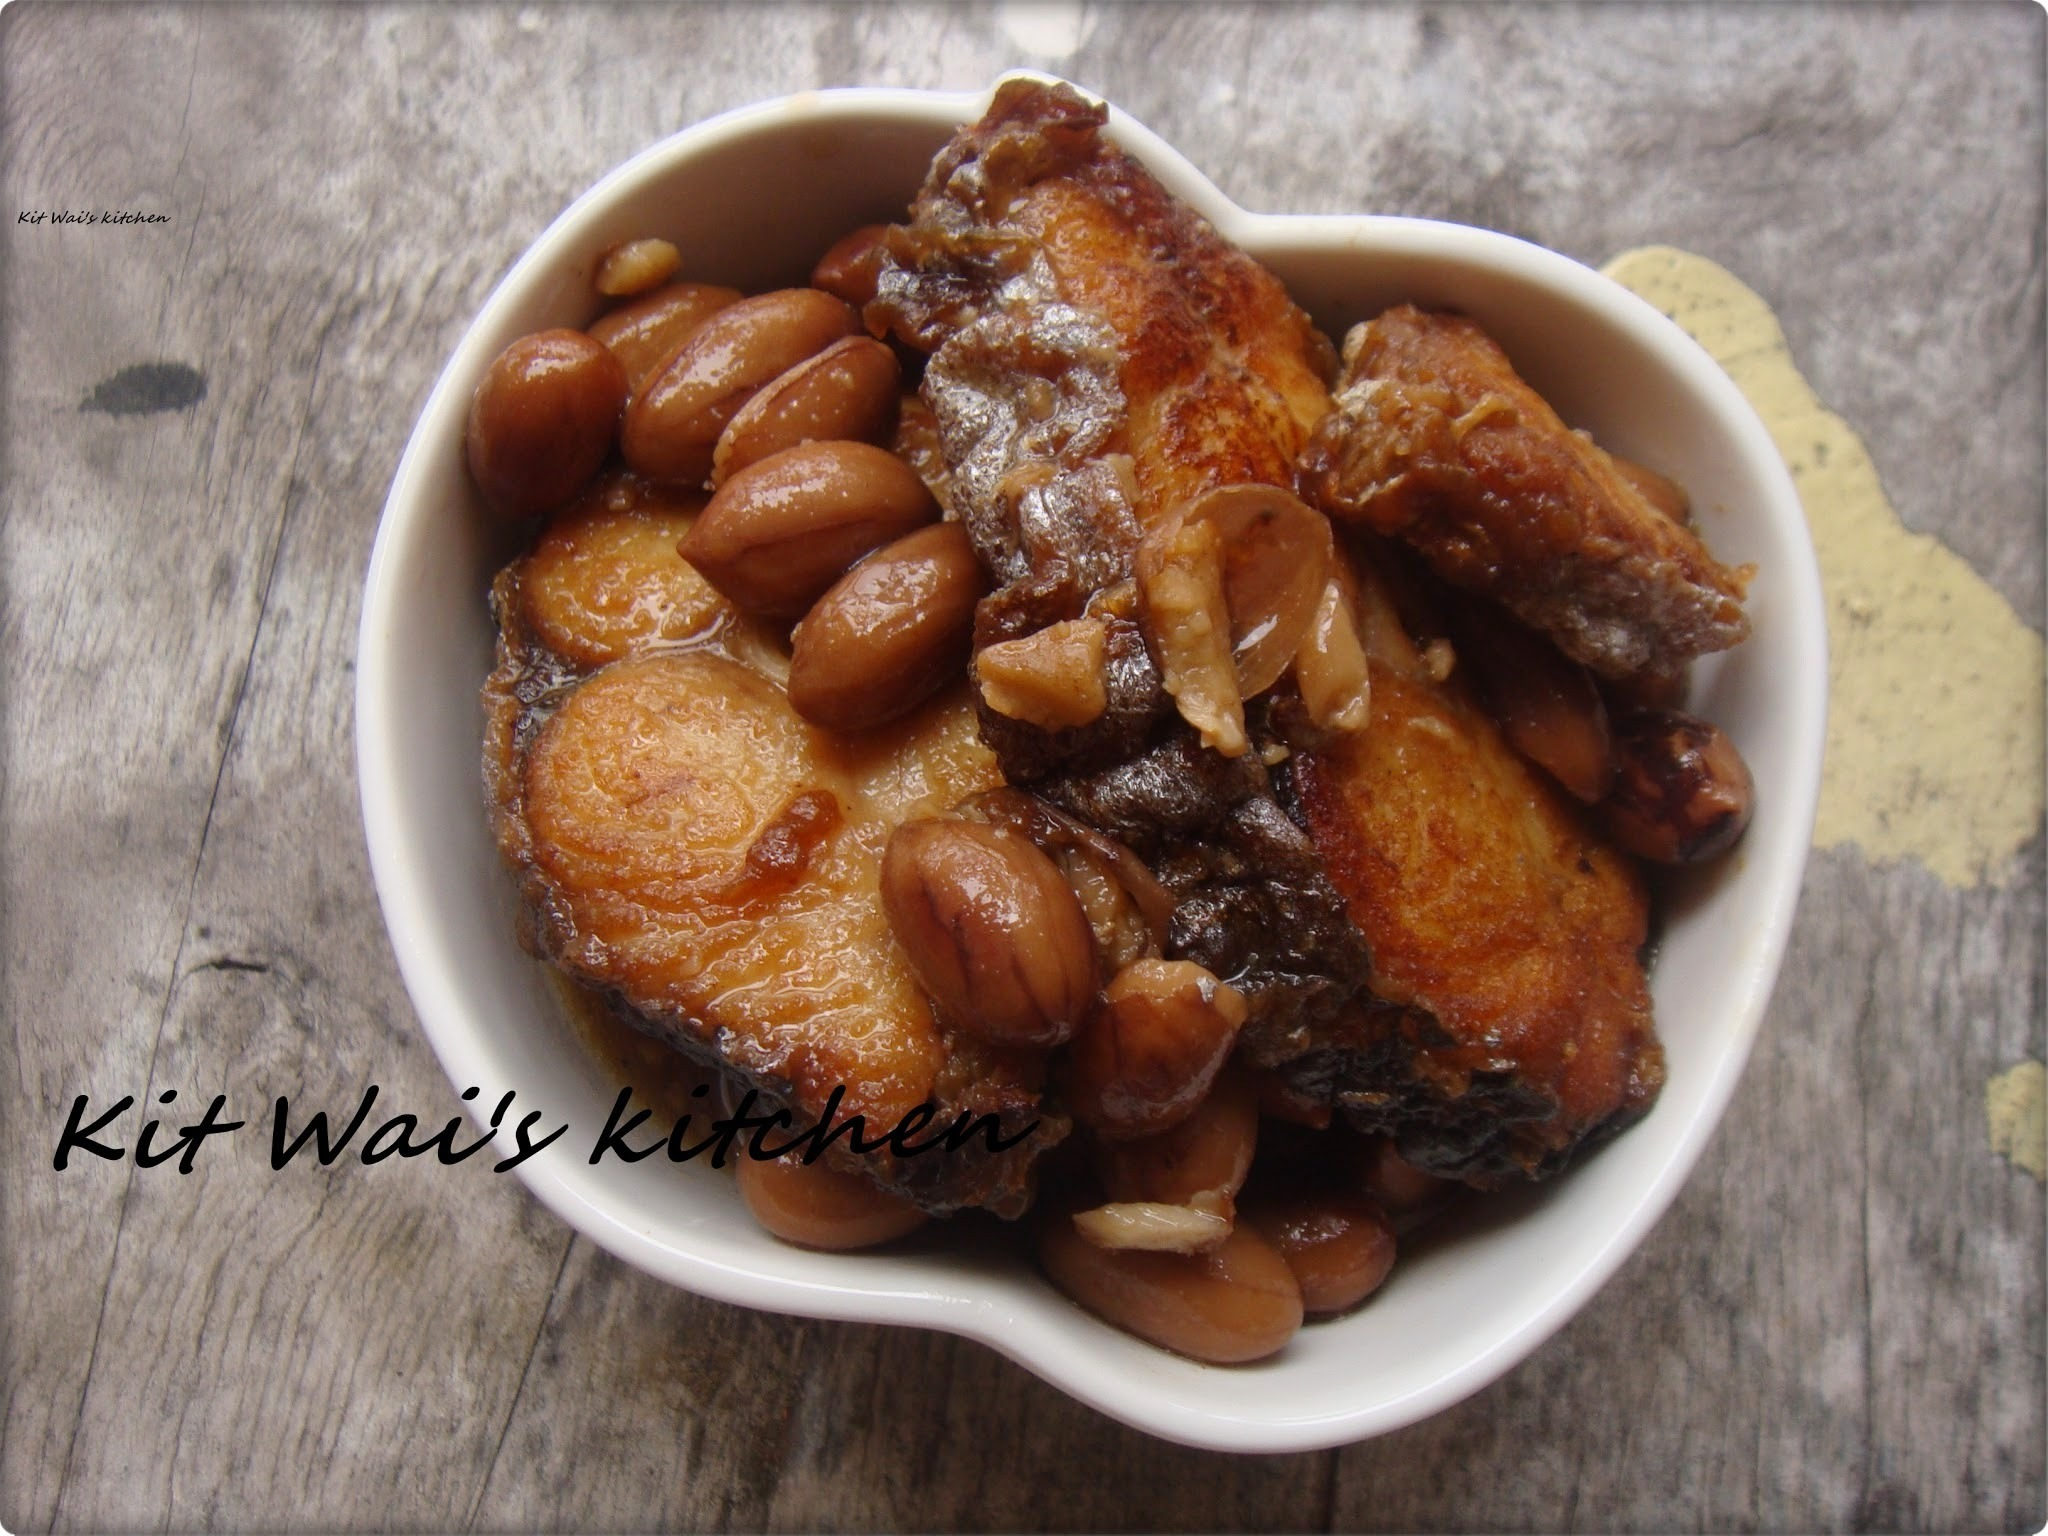 红烧花生鱼肉煲 ~  Braised Fish with Peanuts in Claypot